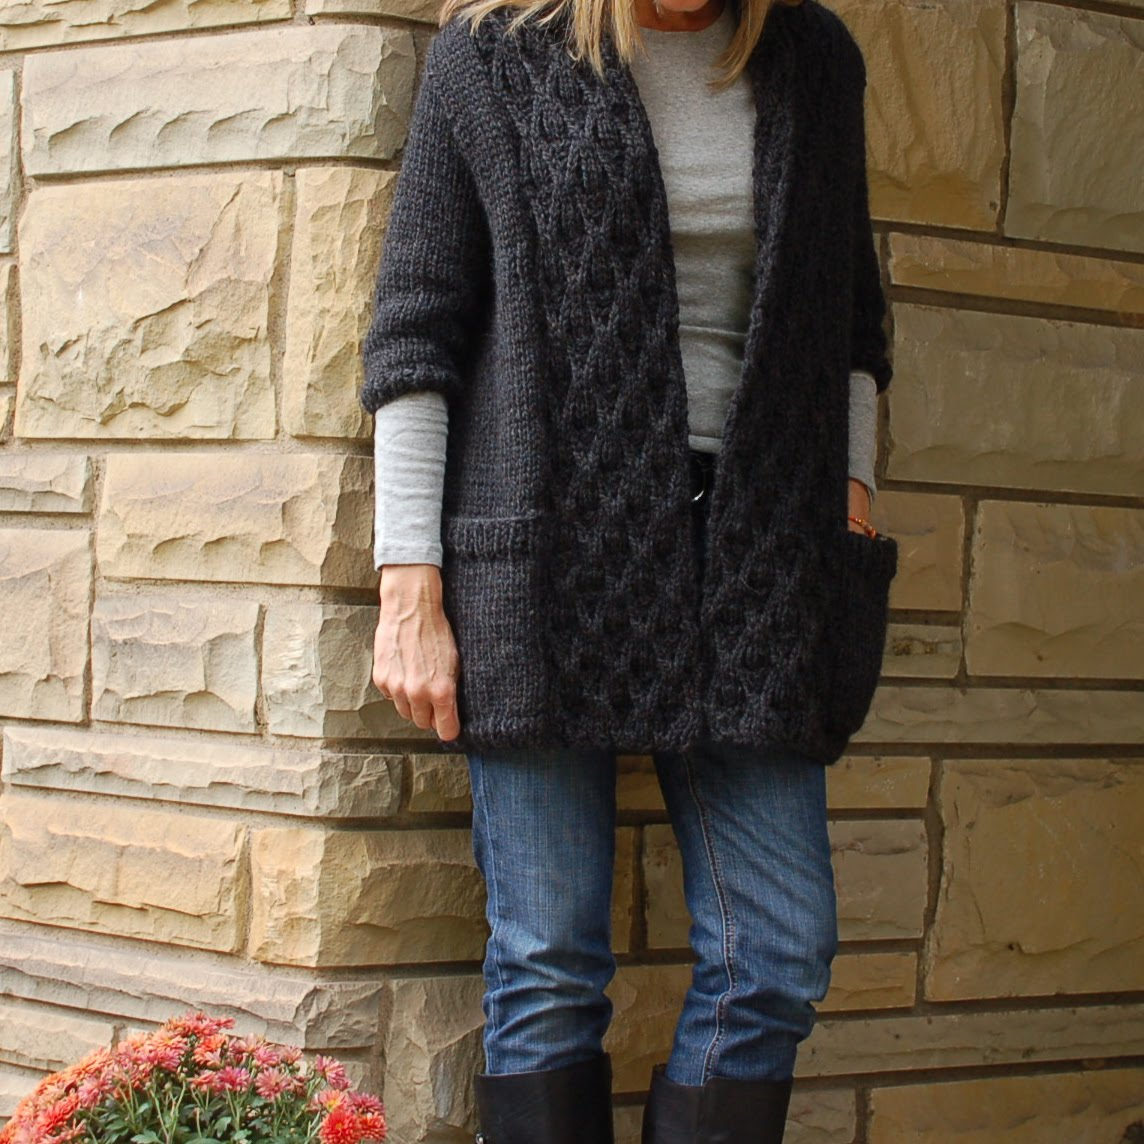 astor - a Friend to knit with